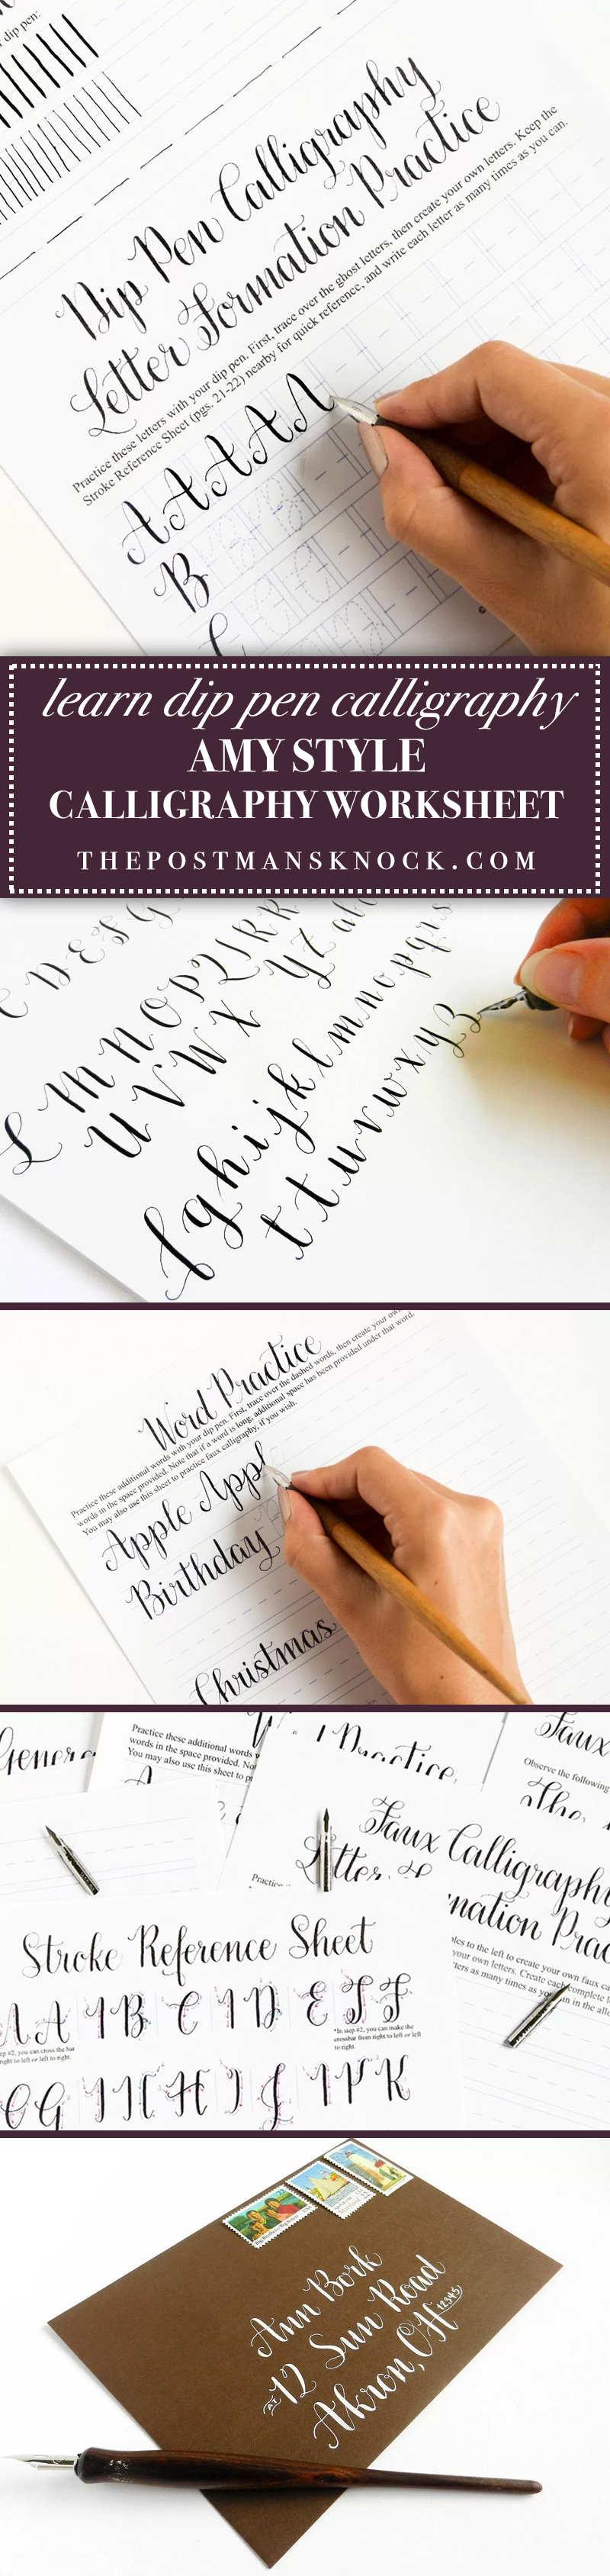 Introducing the Amy Style Learn Calligraphy for a Latté Worksheet Set + Video Course | The Postman's Knock